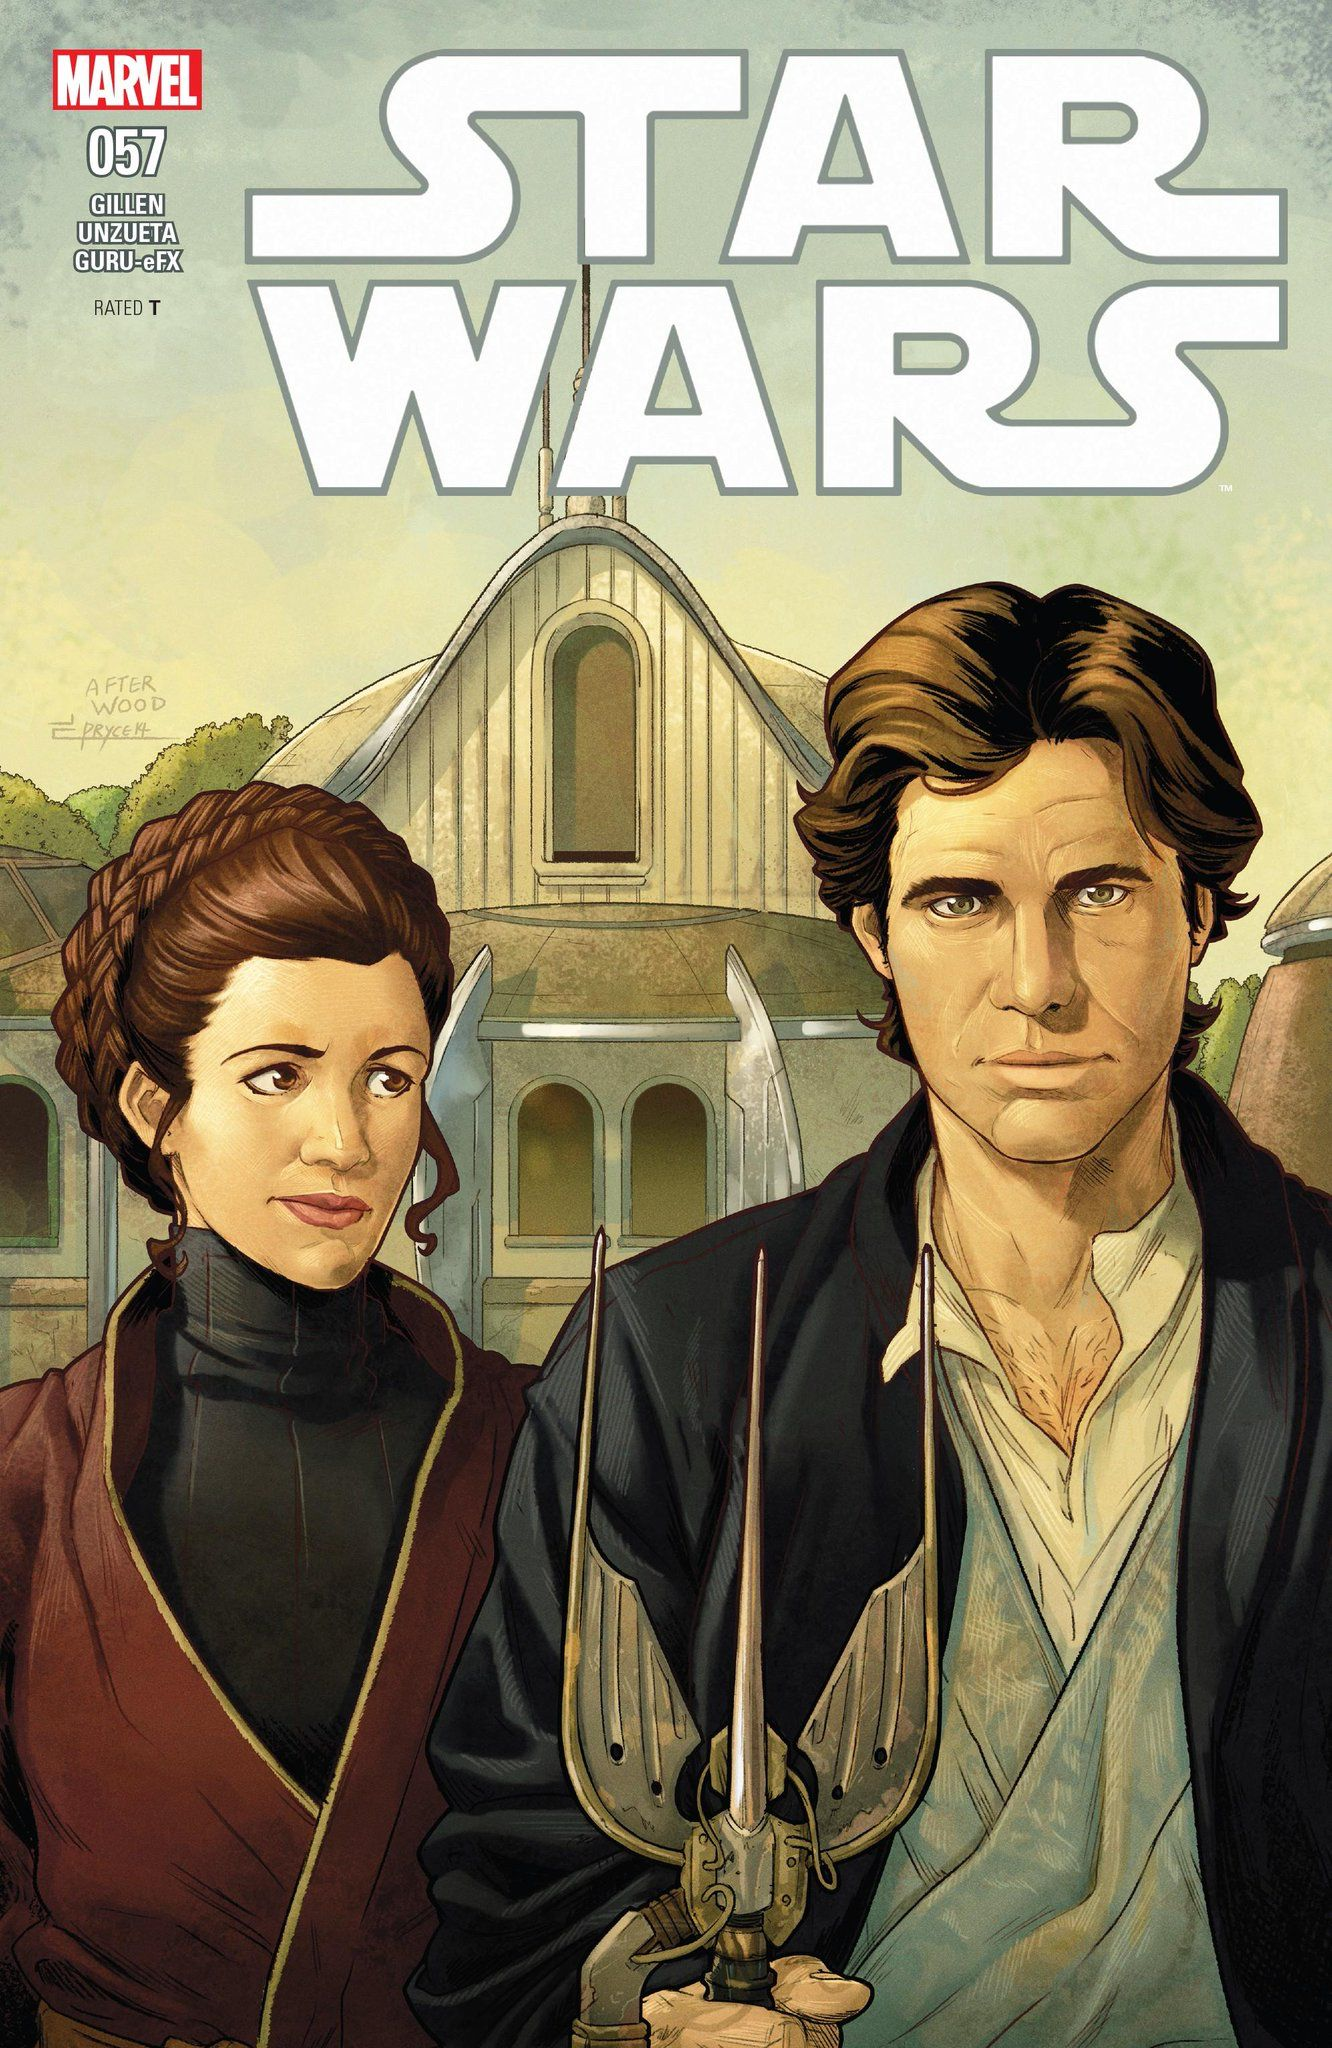 Pin By Michael Bussard On Comic Book Covers Star Wars Comics Star Wars Humor Star Wars Illustration